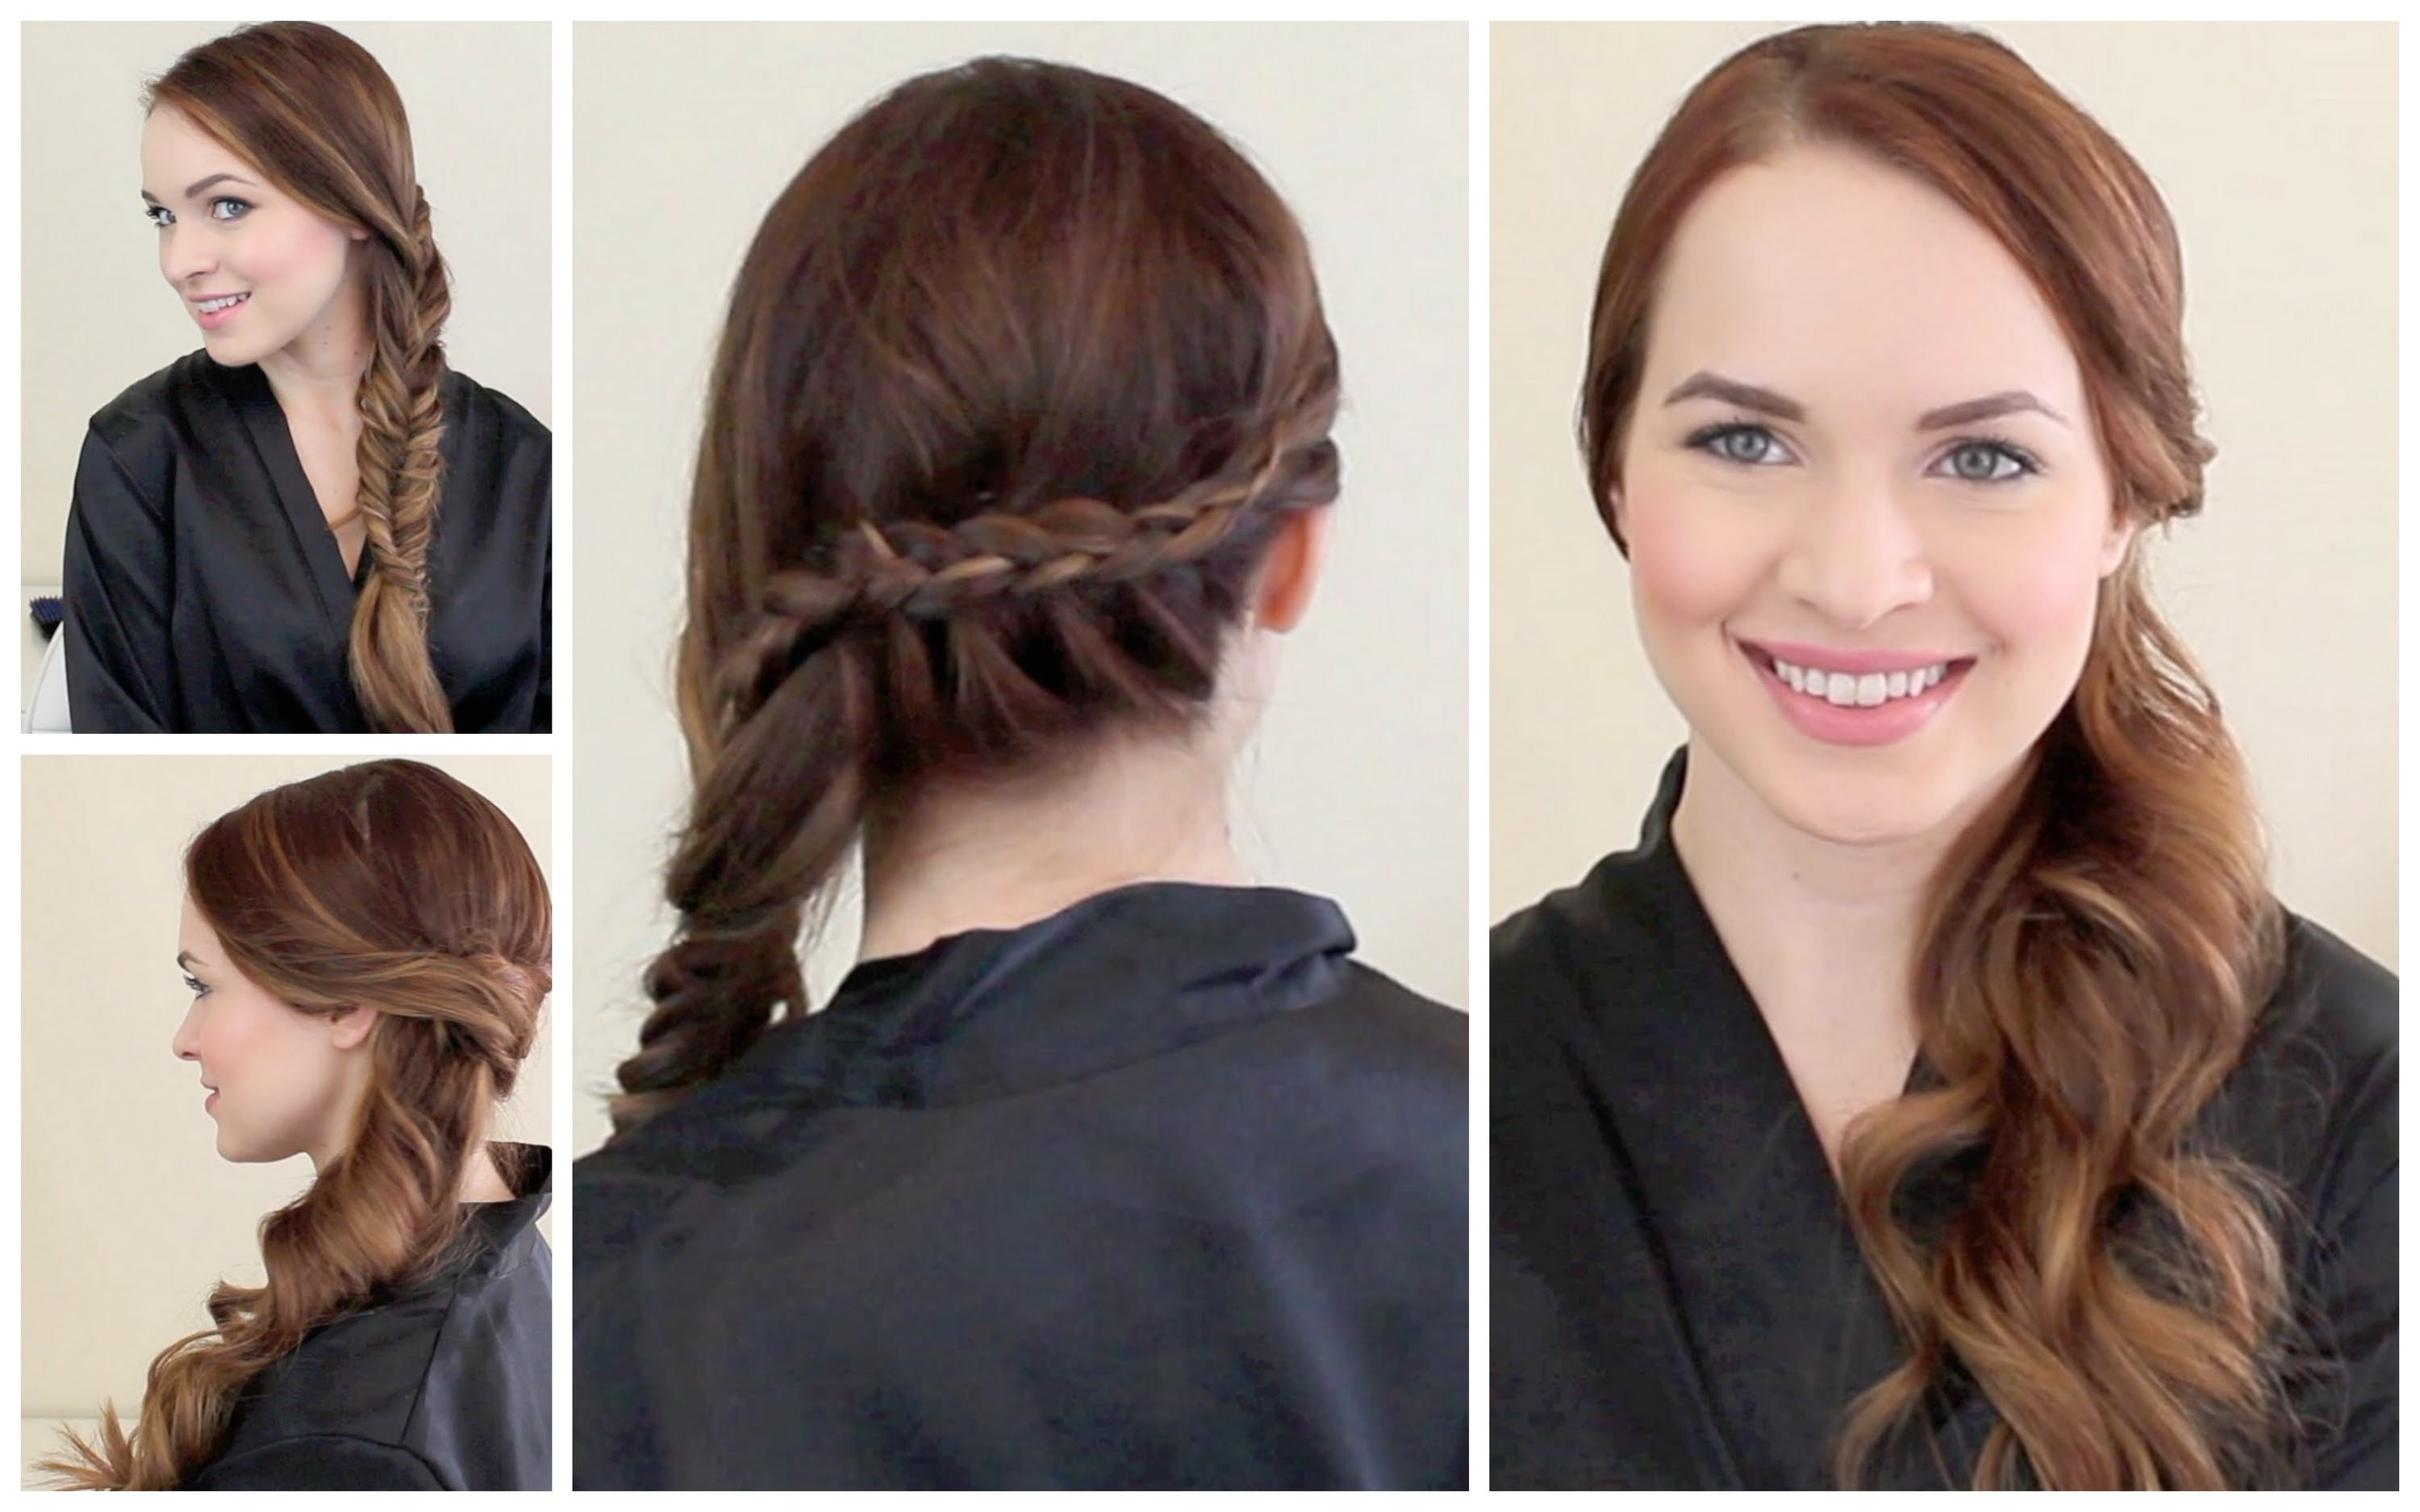 min hairstyles for graduation hairstyles for long hair hairstyle day long hairstyles graduation